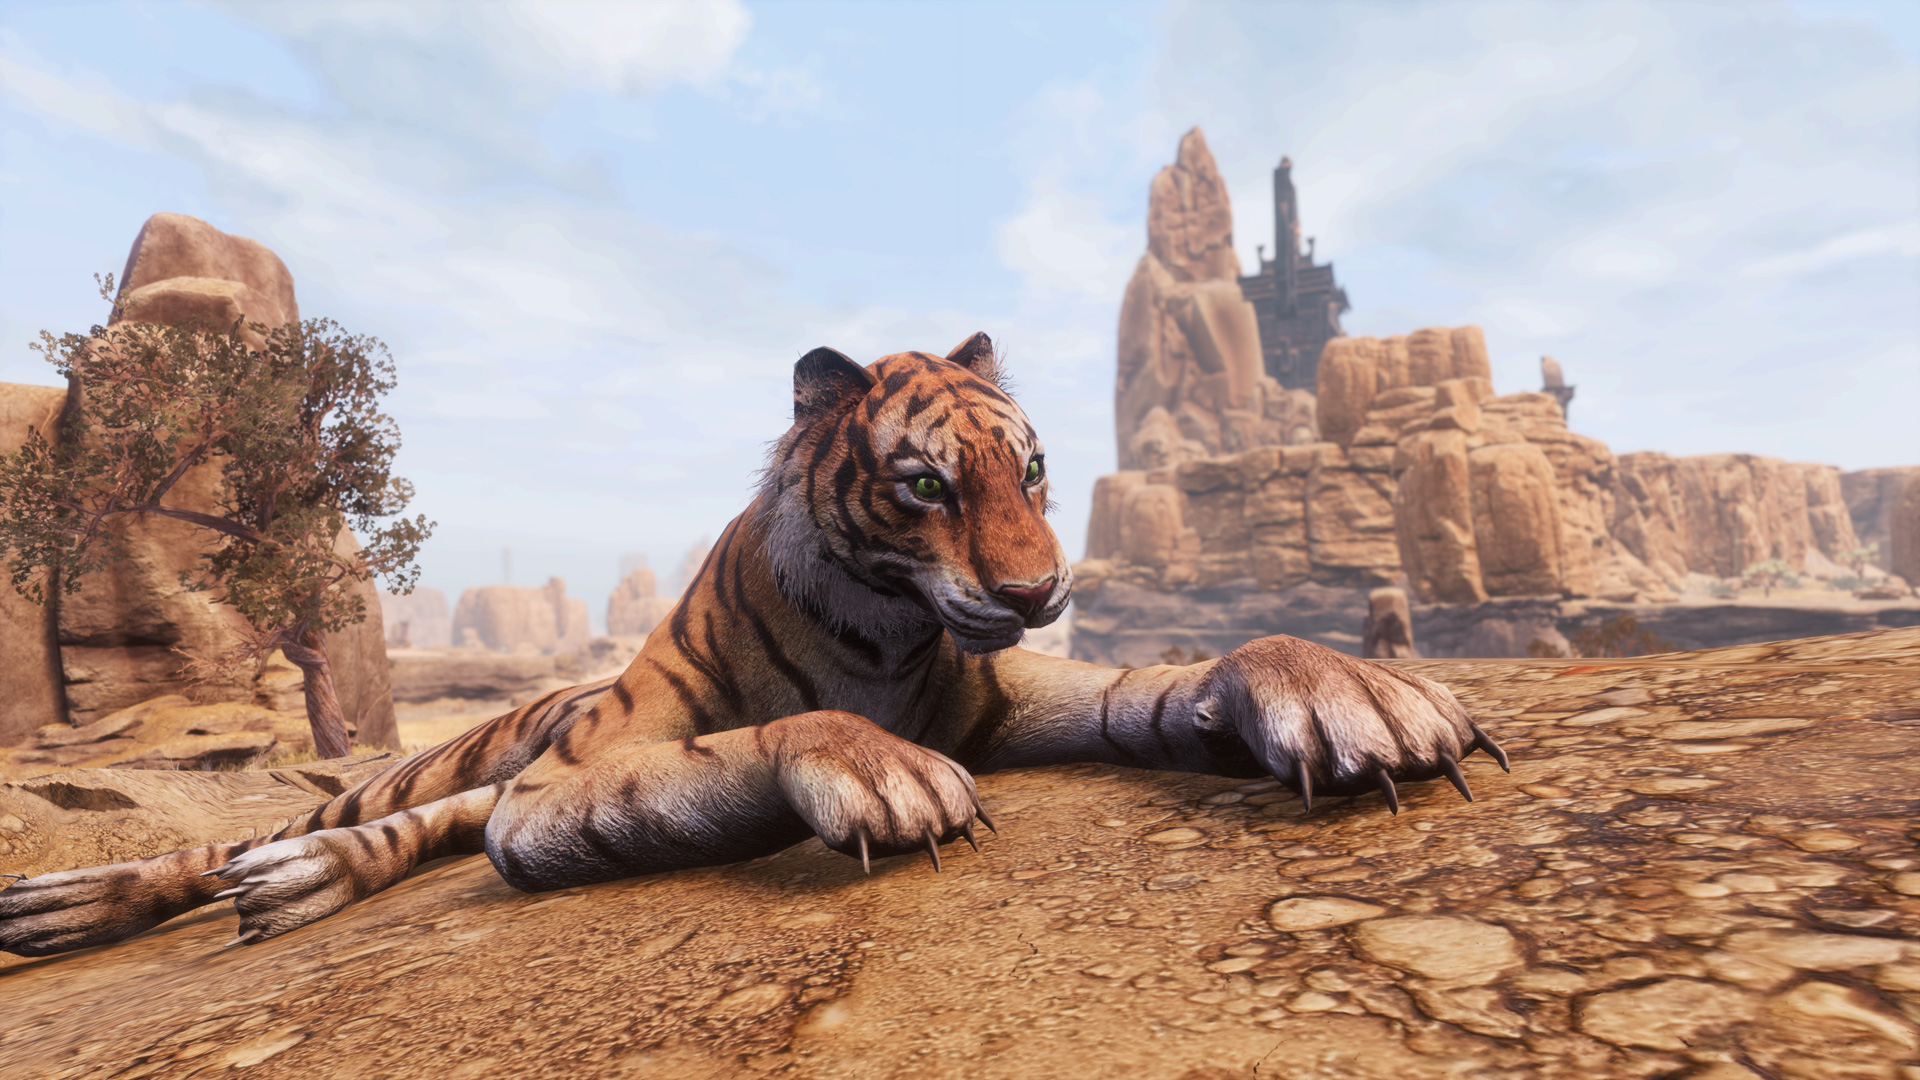 Conan-Exiles-Super-Resolution-2018.08.08---10.51.08